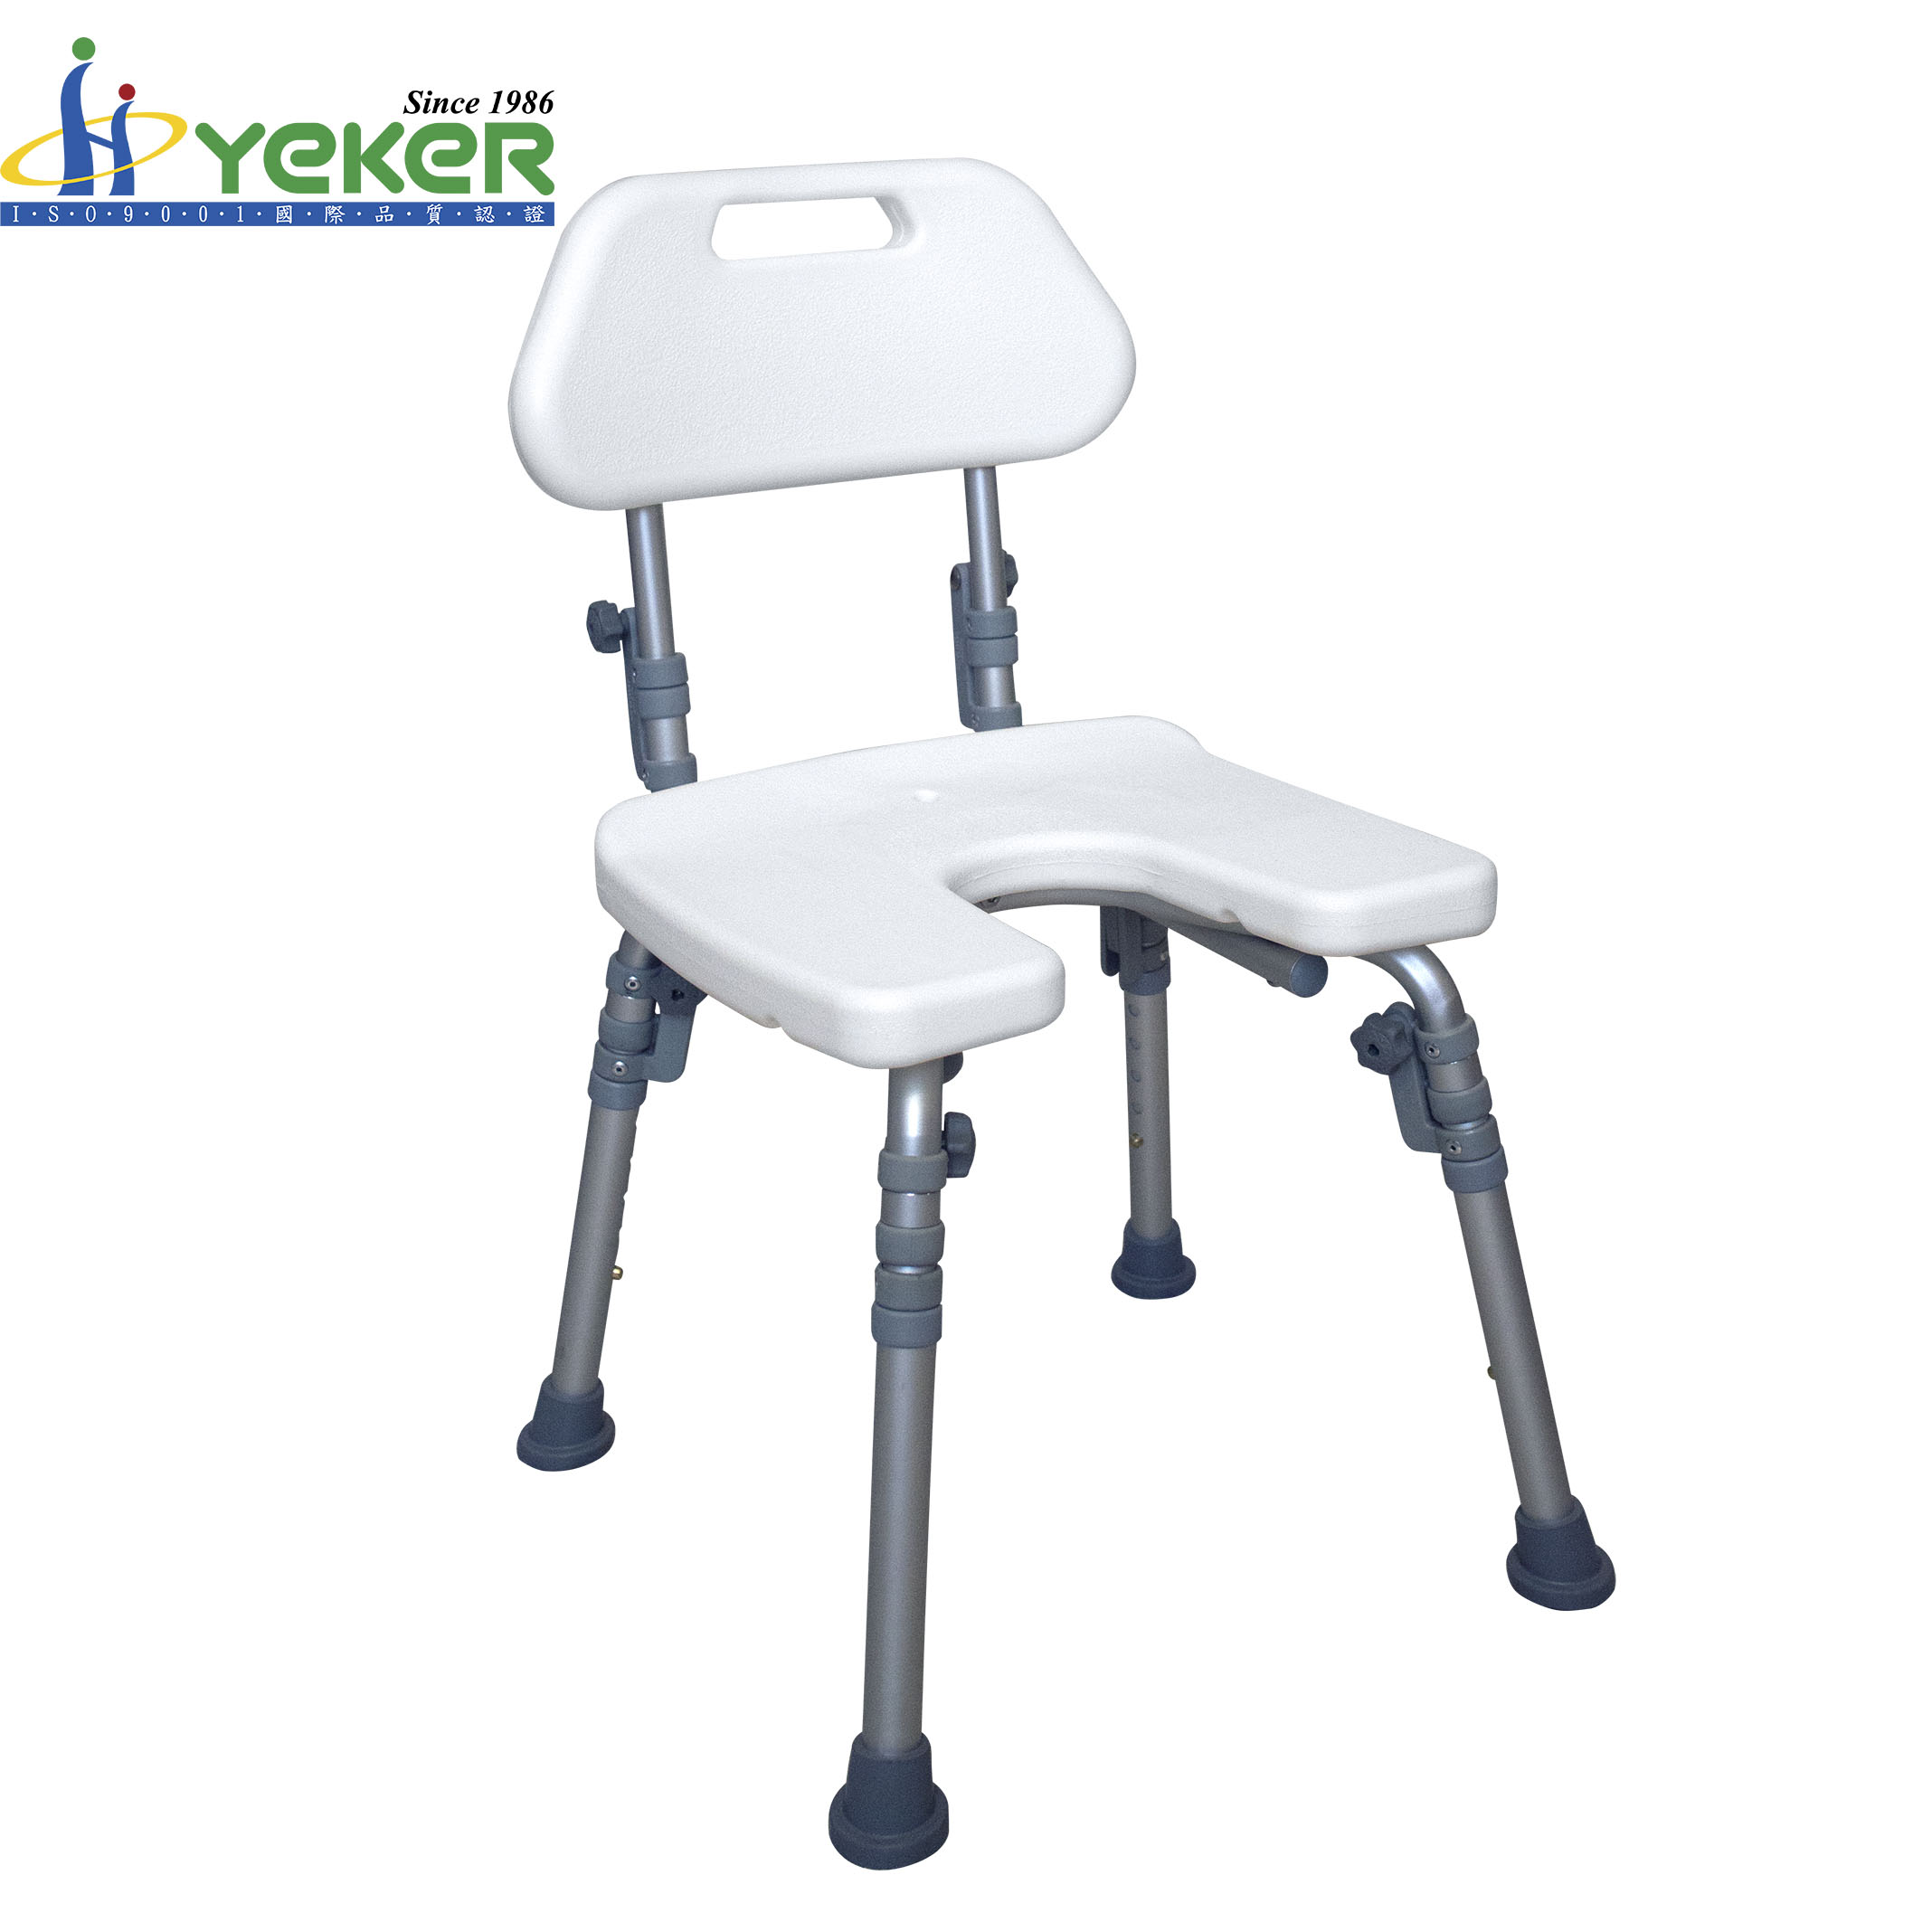 Cool Adjustable Shower Seat Adjustable Folding Shower Chair Bath Chair For The Elderly And Disabled Elderly Folding Chair Buy Furniture For Disabled Machost Co Dining Chair Design Ideas Machostcouk